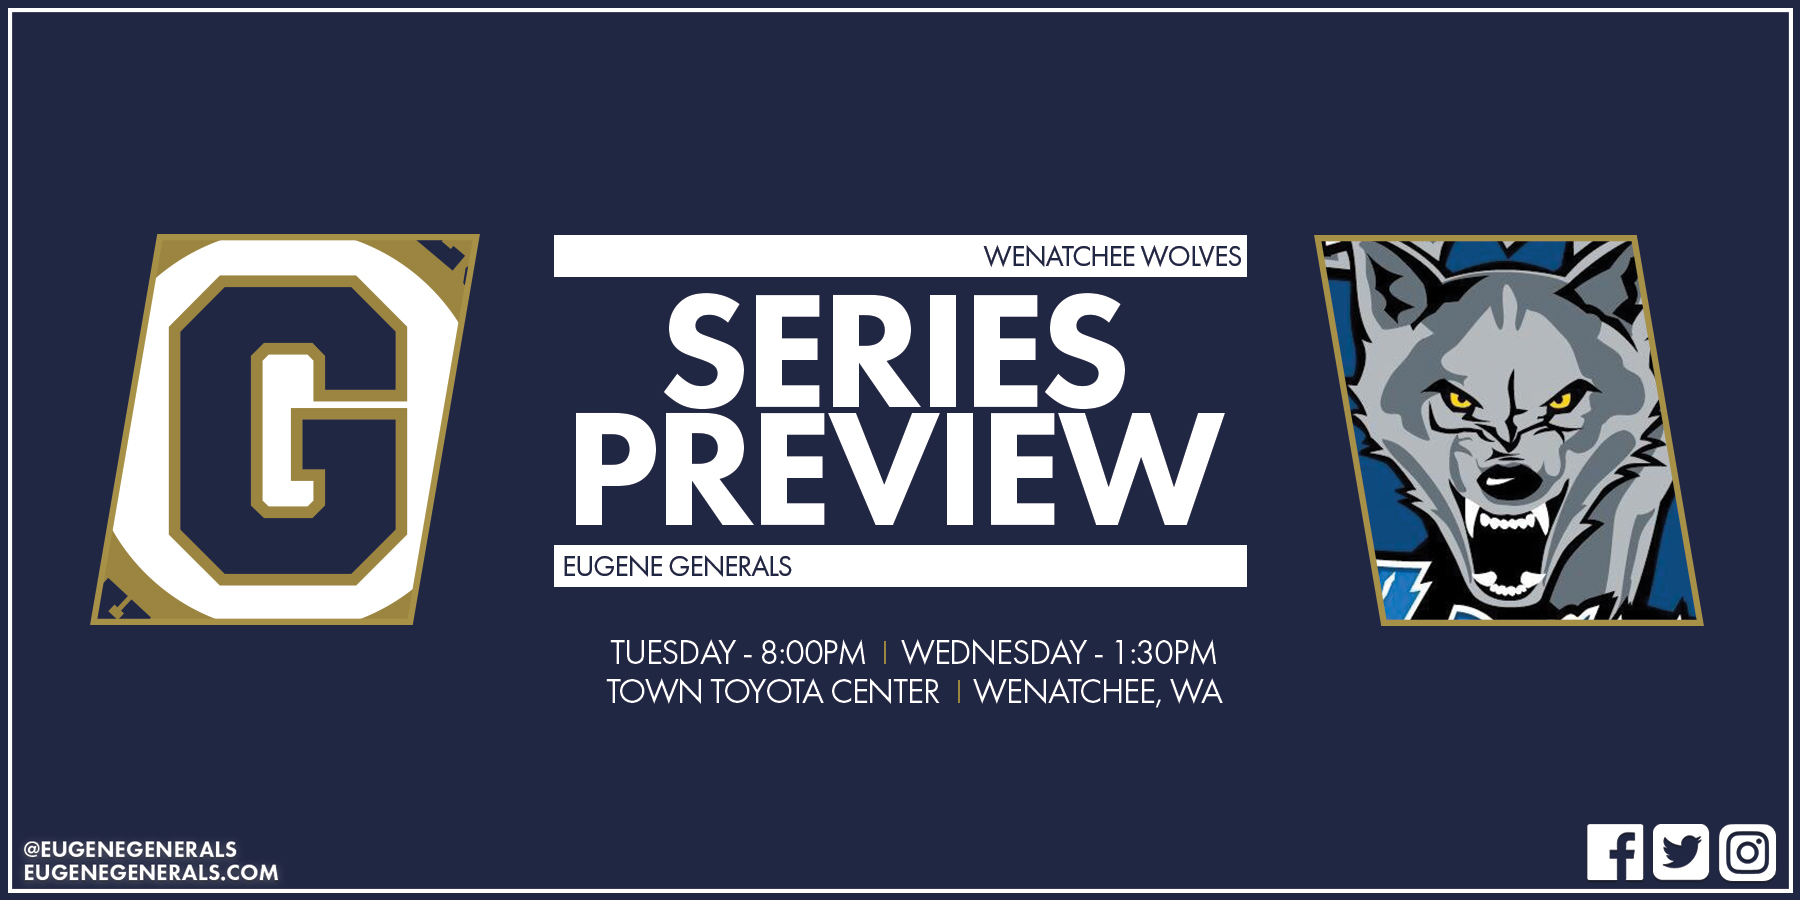 Series Preview - Wolves Welcome Generals To Wenatchee